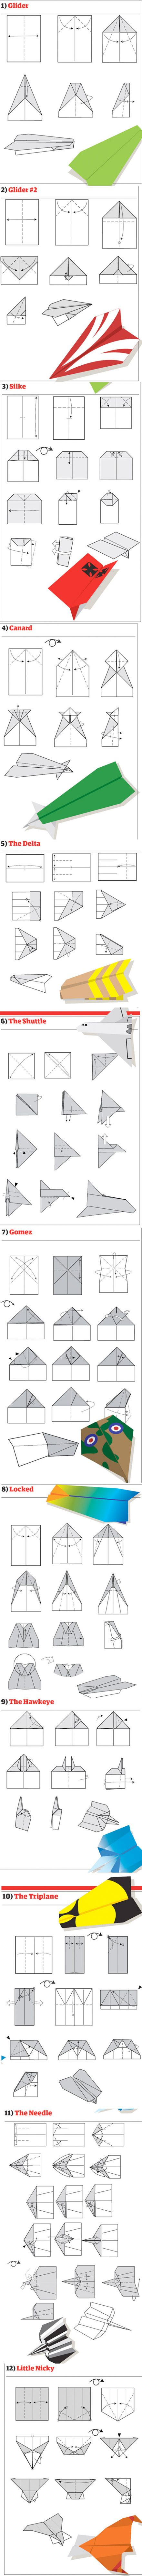 different ways to fold planes